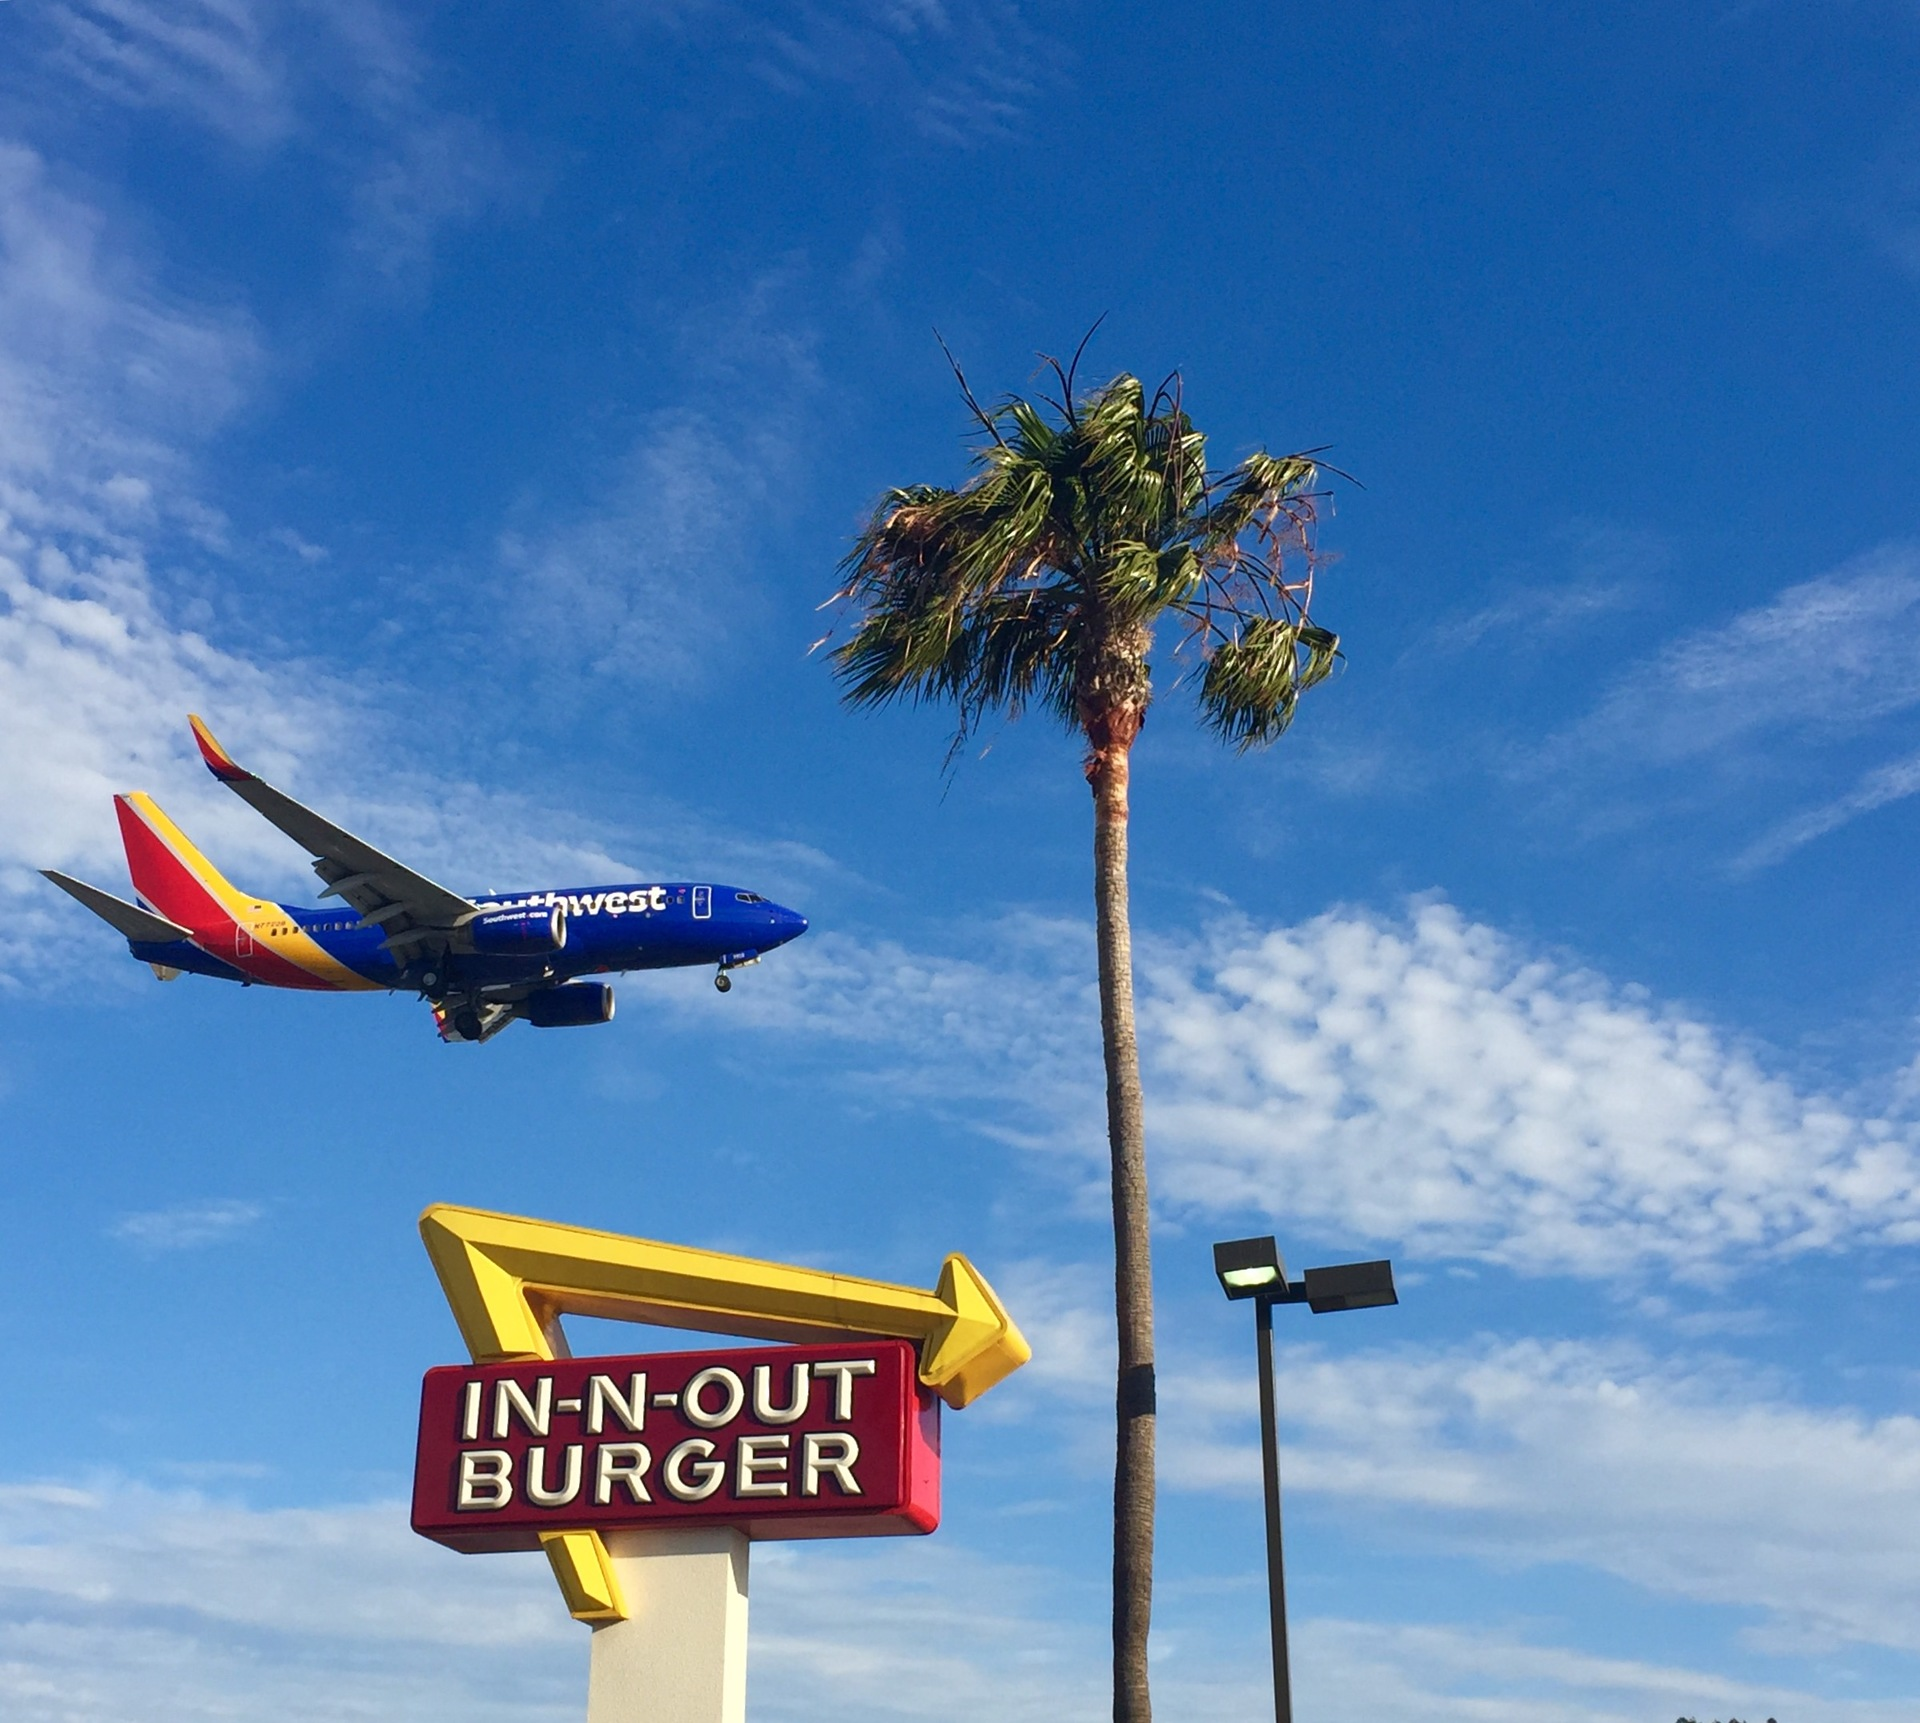 This way to In N Out